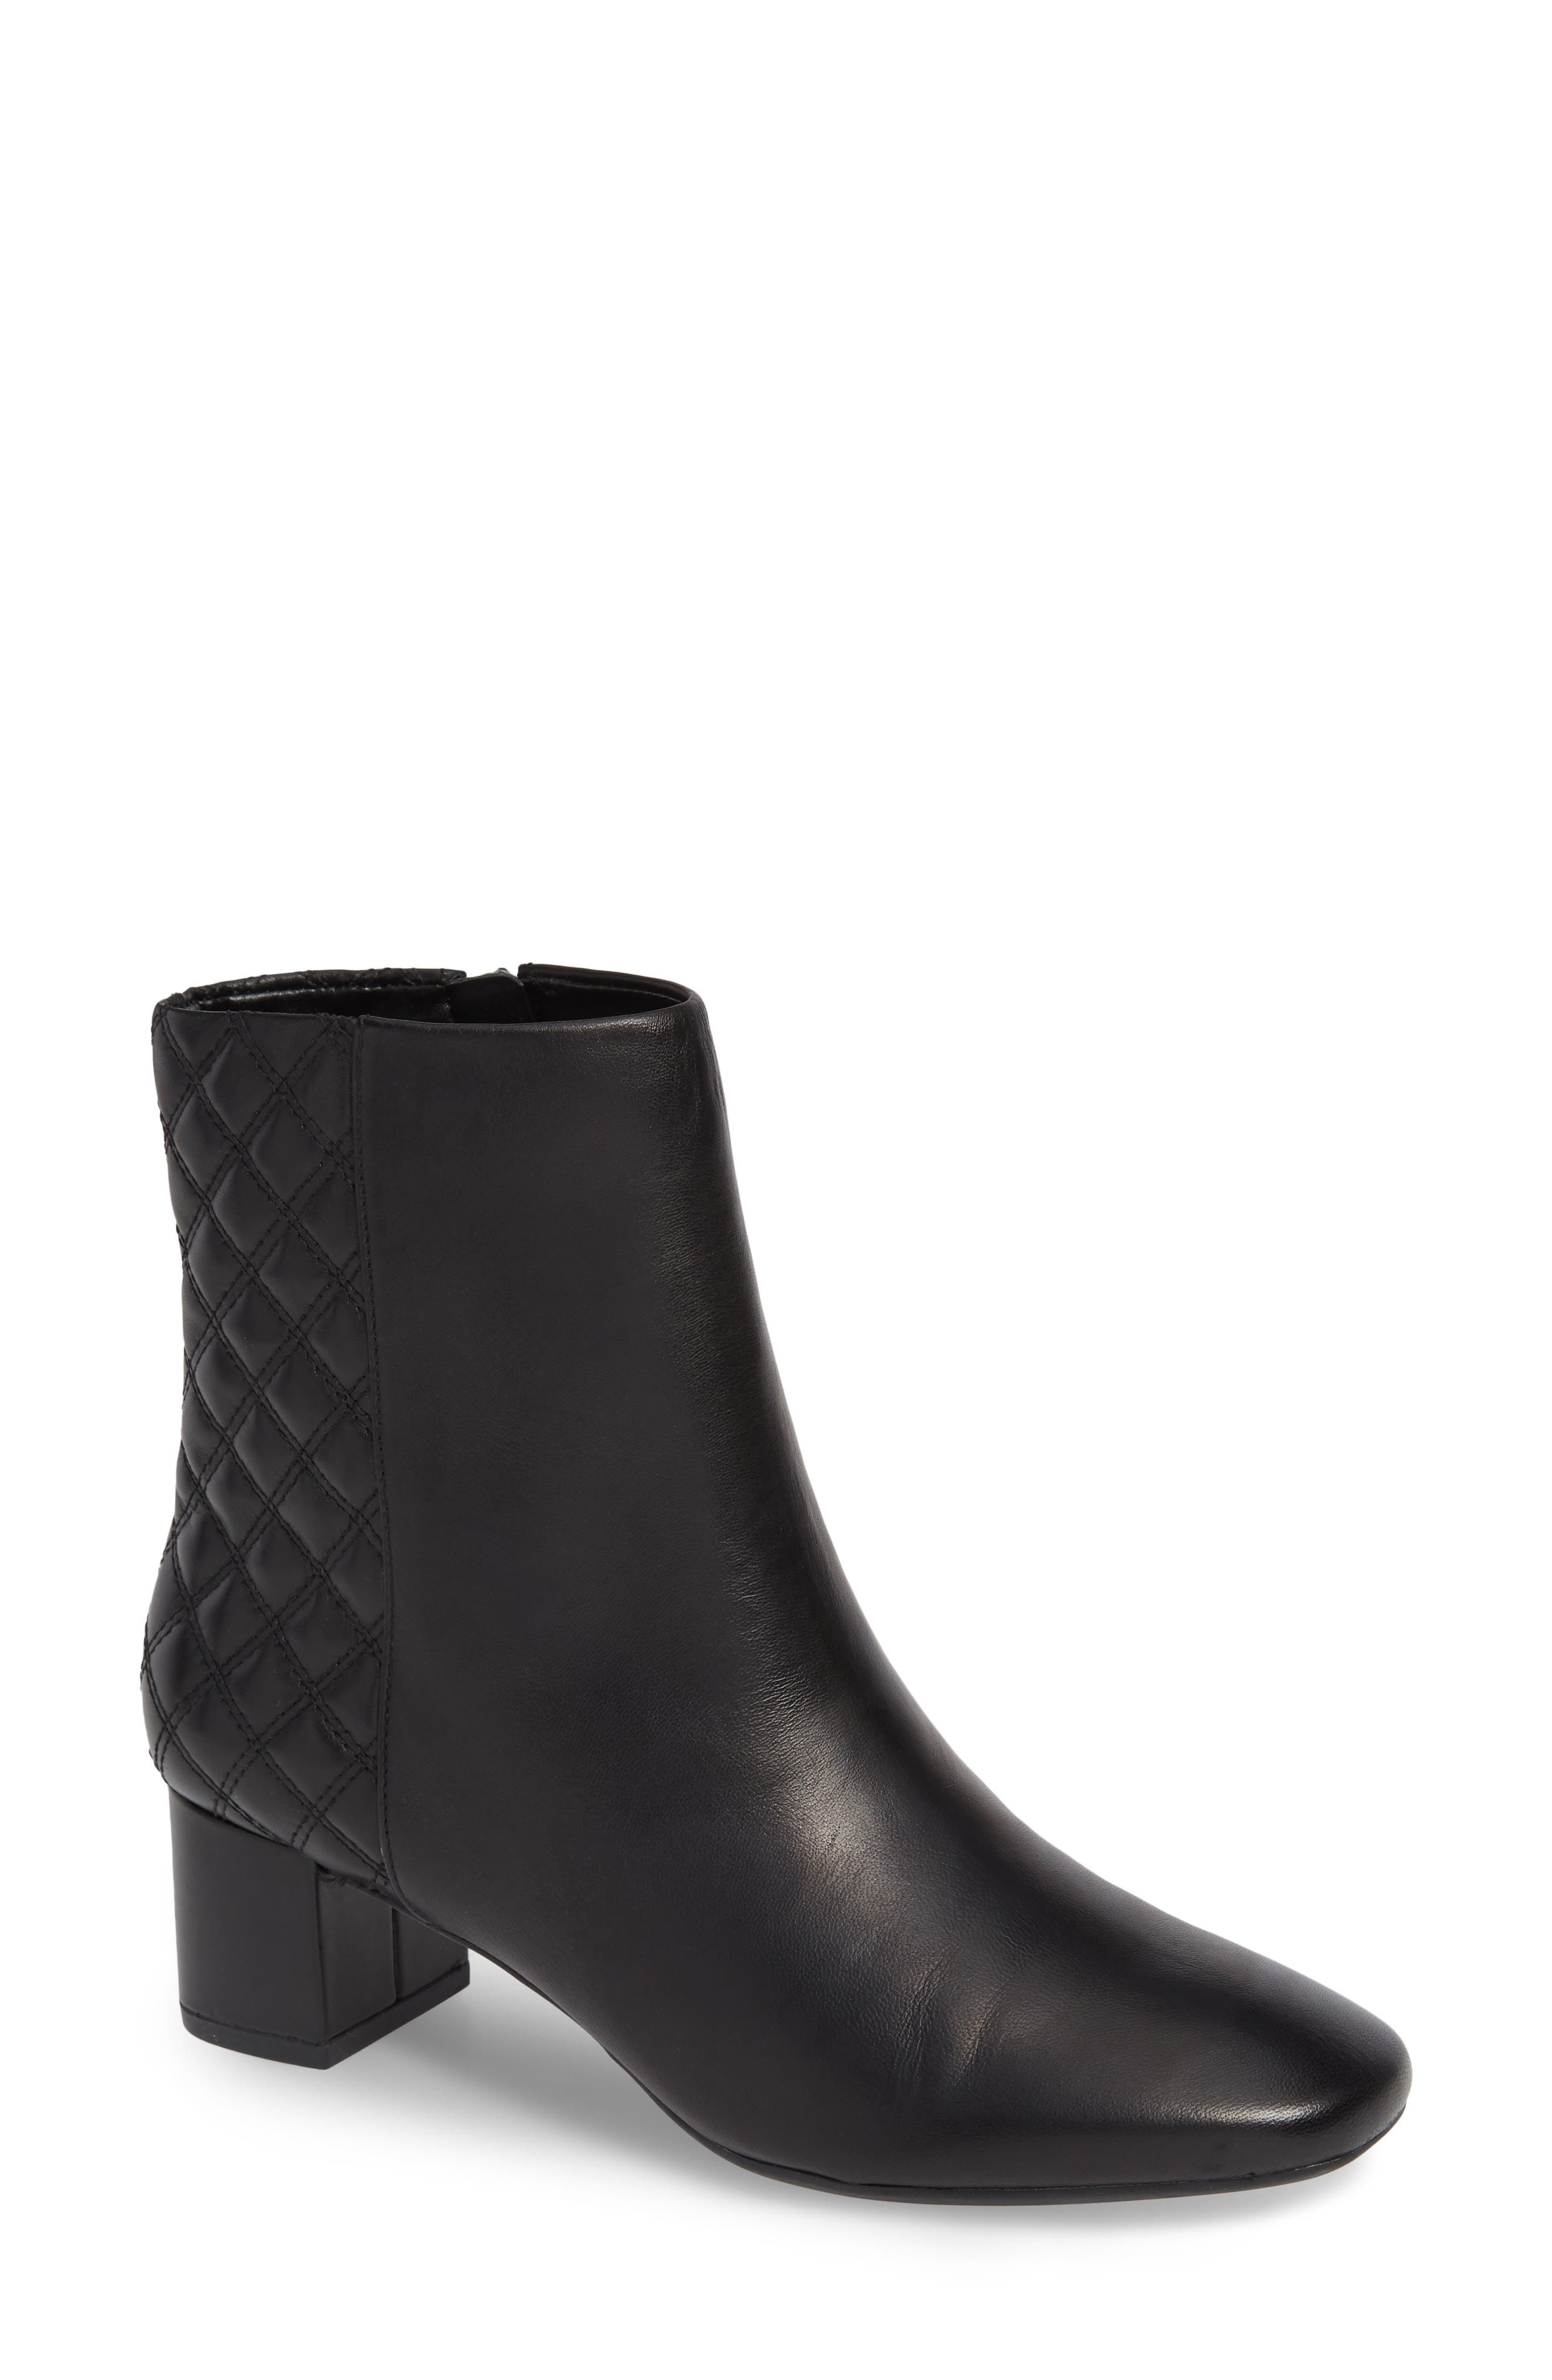 CLARKS<SUP>®</SUP>, Tealia Luck Bootie, Main thumbnail 1, color, BLACK LEATHER